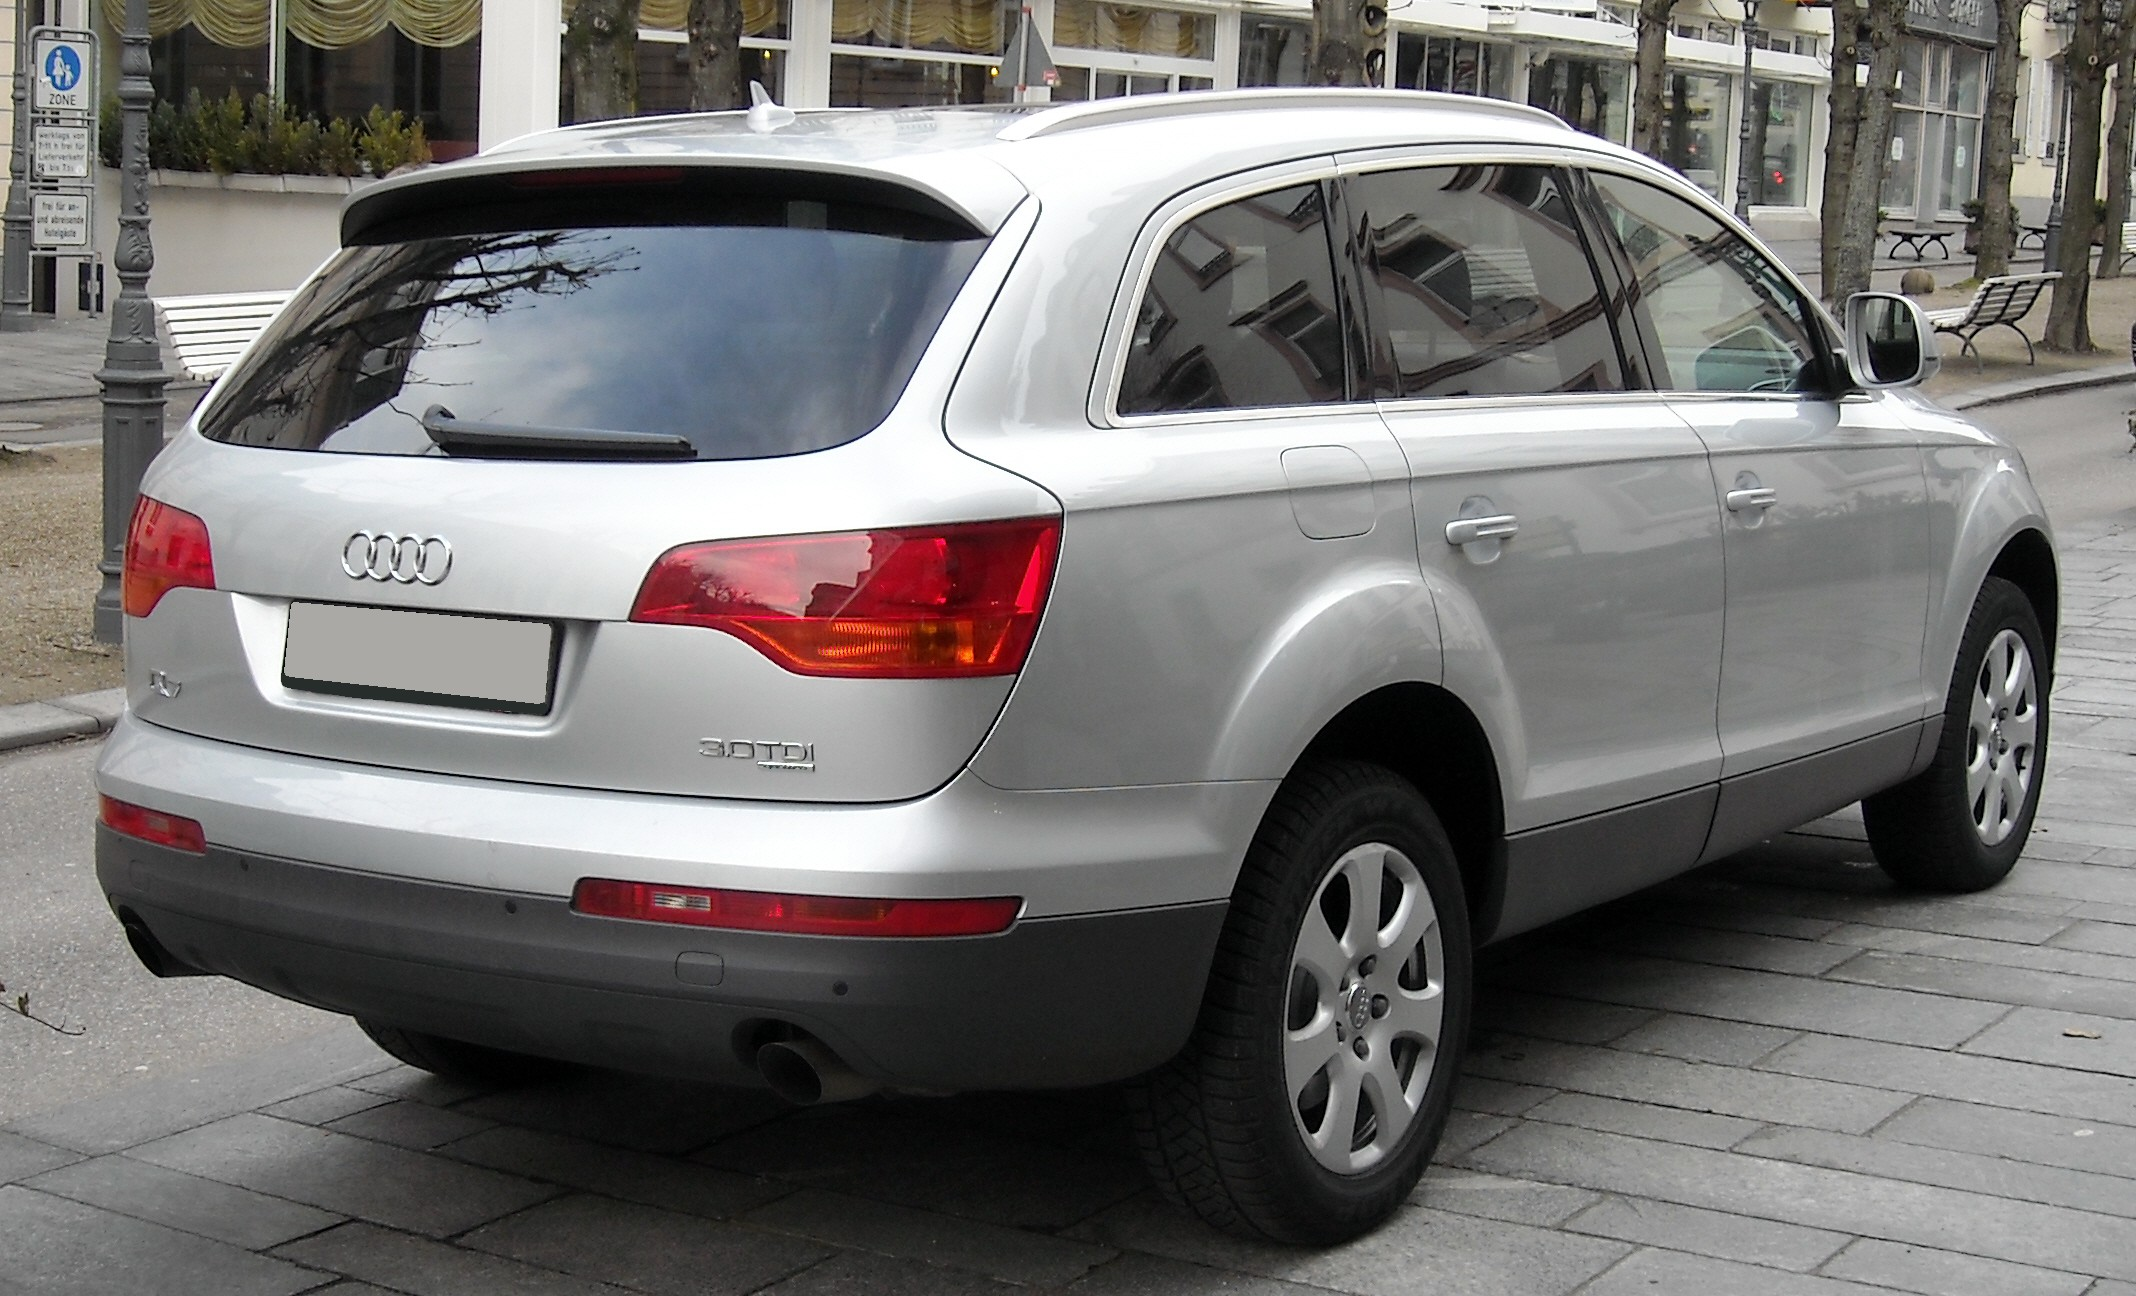 File Audi Q7 Rear 20080120 Jpg Wikimedia Commons